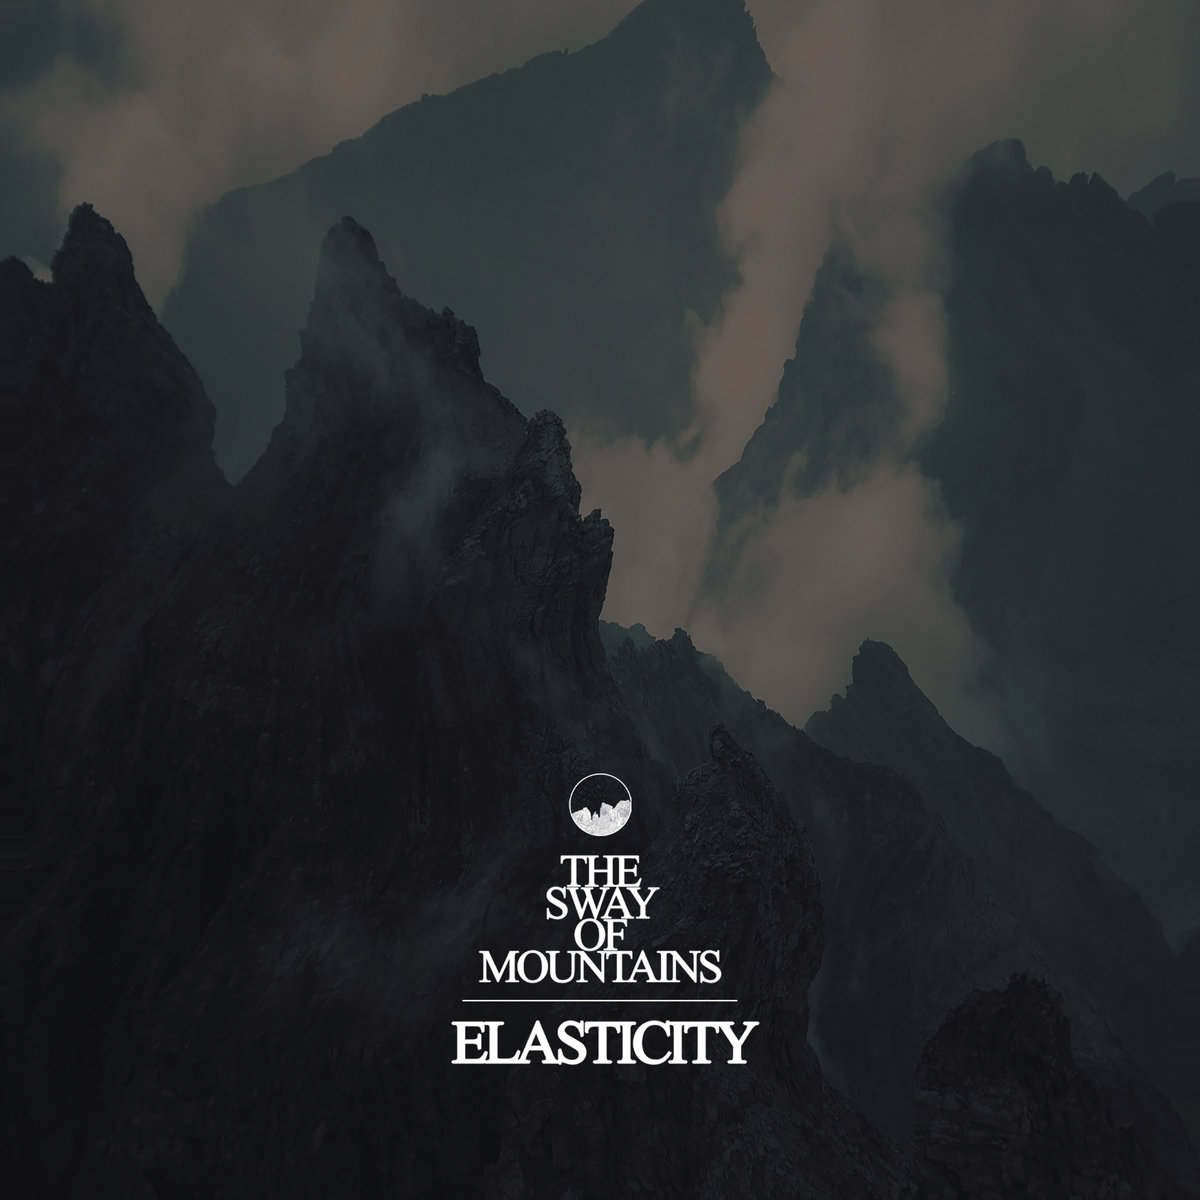 https://theswayofmountains.bandcamp.com/album/elasticity